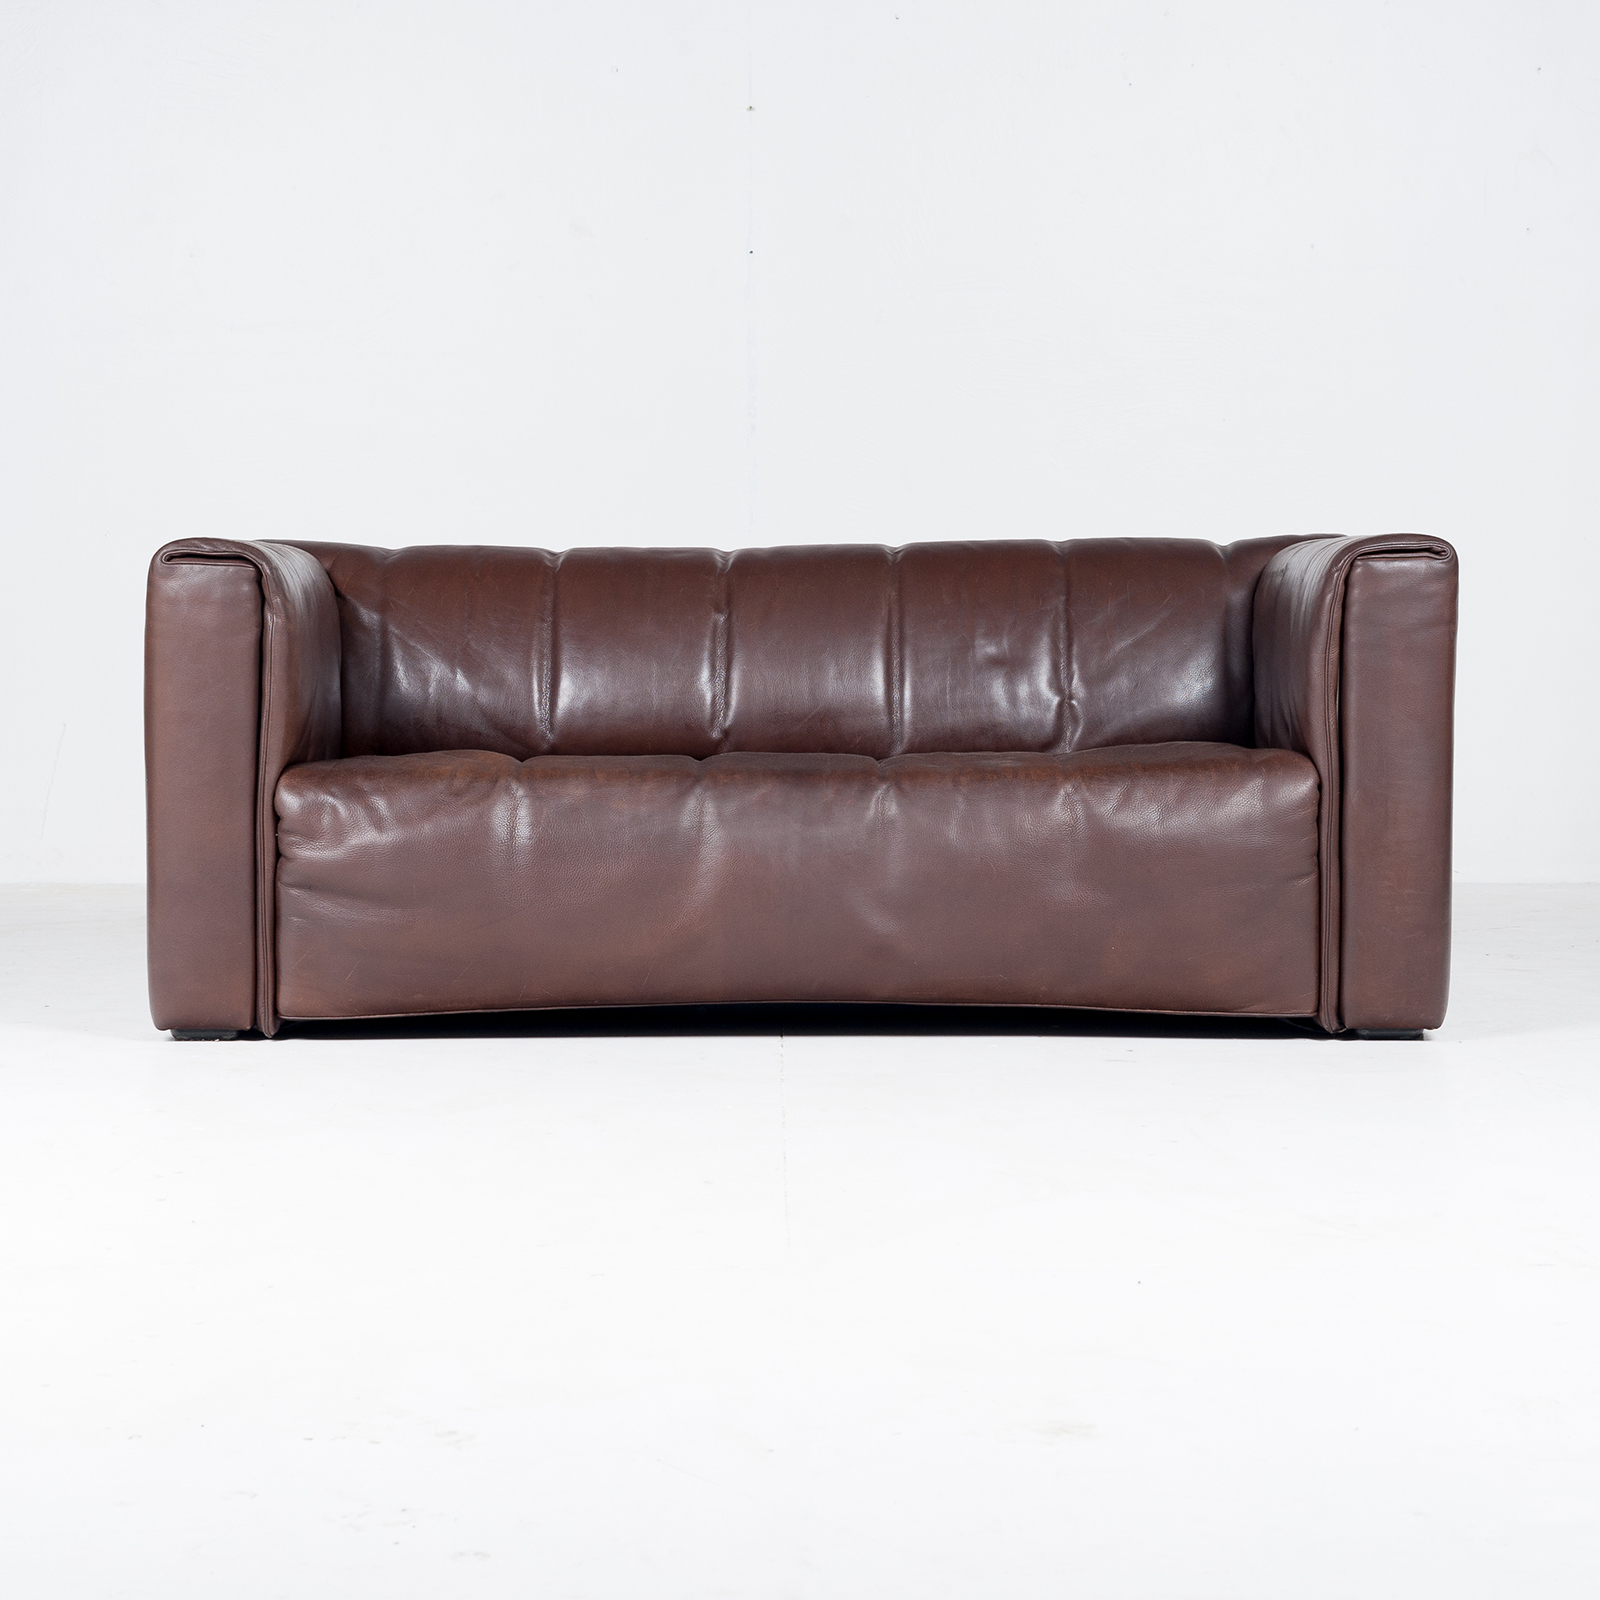 2.5 Seat Leather Sofa By Wittmann, Austria31